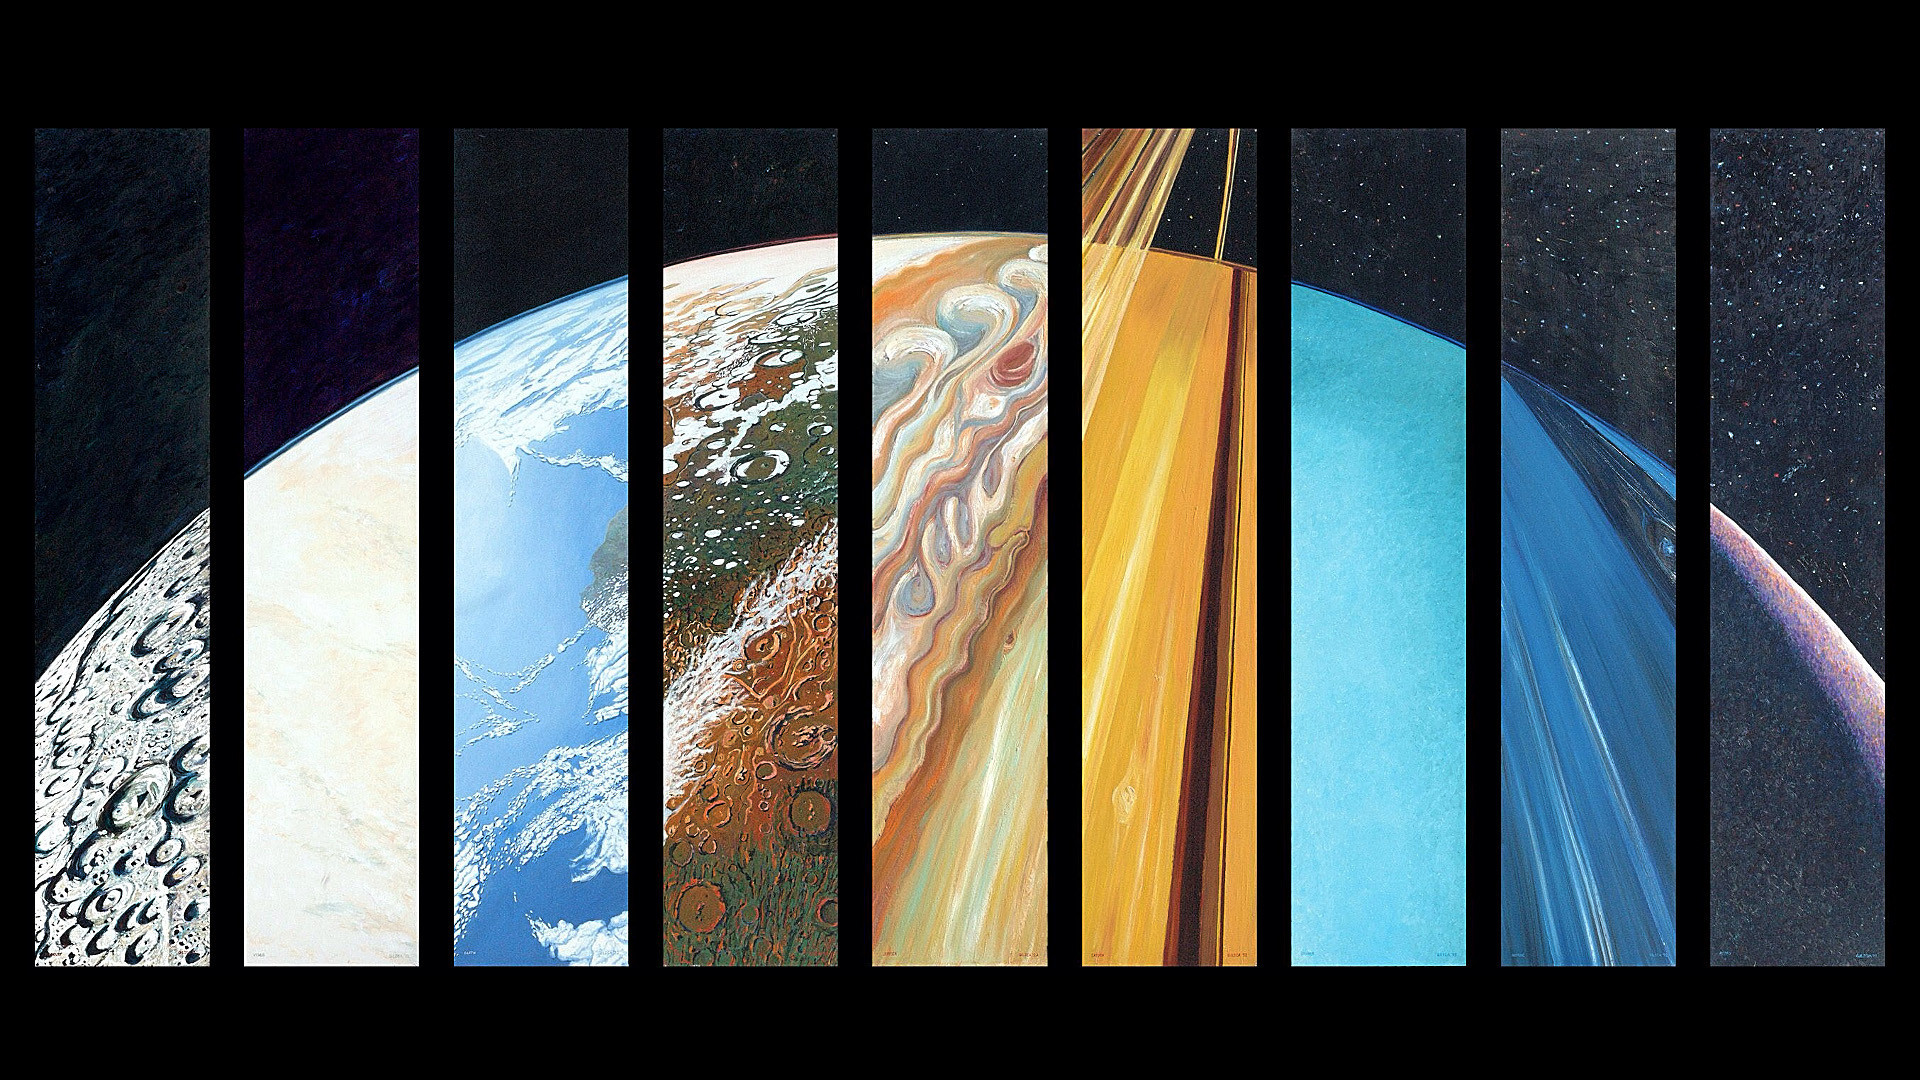 Every Planet in One – Planetary Suite by Steve Gildea [1920×1080] …